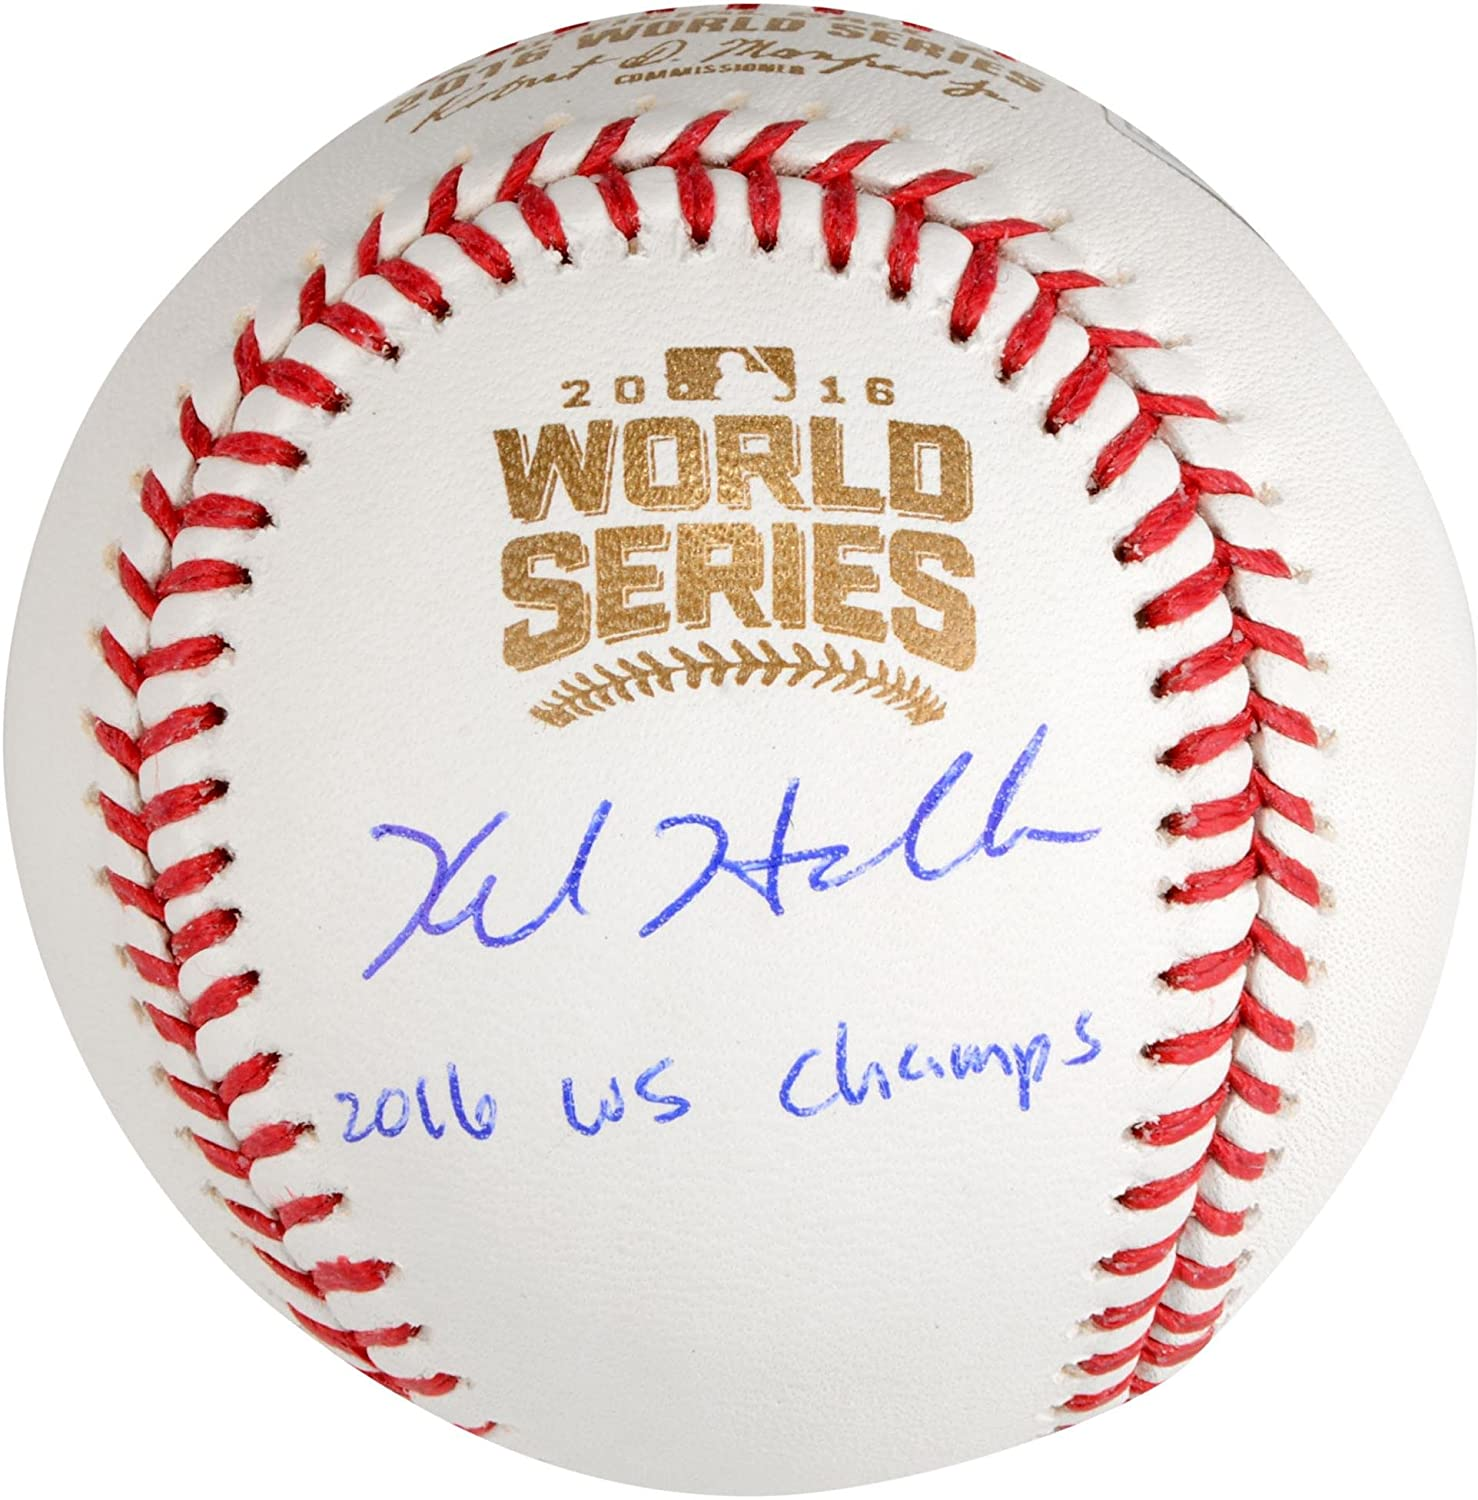 Kyle Hendricks Chicago Cubs 2016 MLB World Series Champions Autographed World Series Logo Baseball with 2016 WS Champs Inscription - Fanatics Authentic Certified